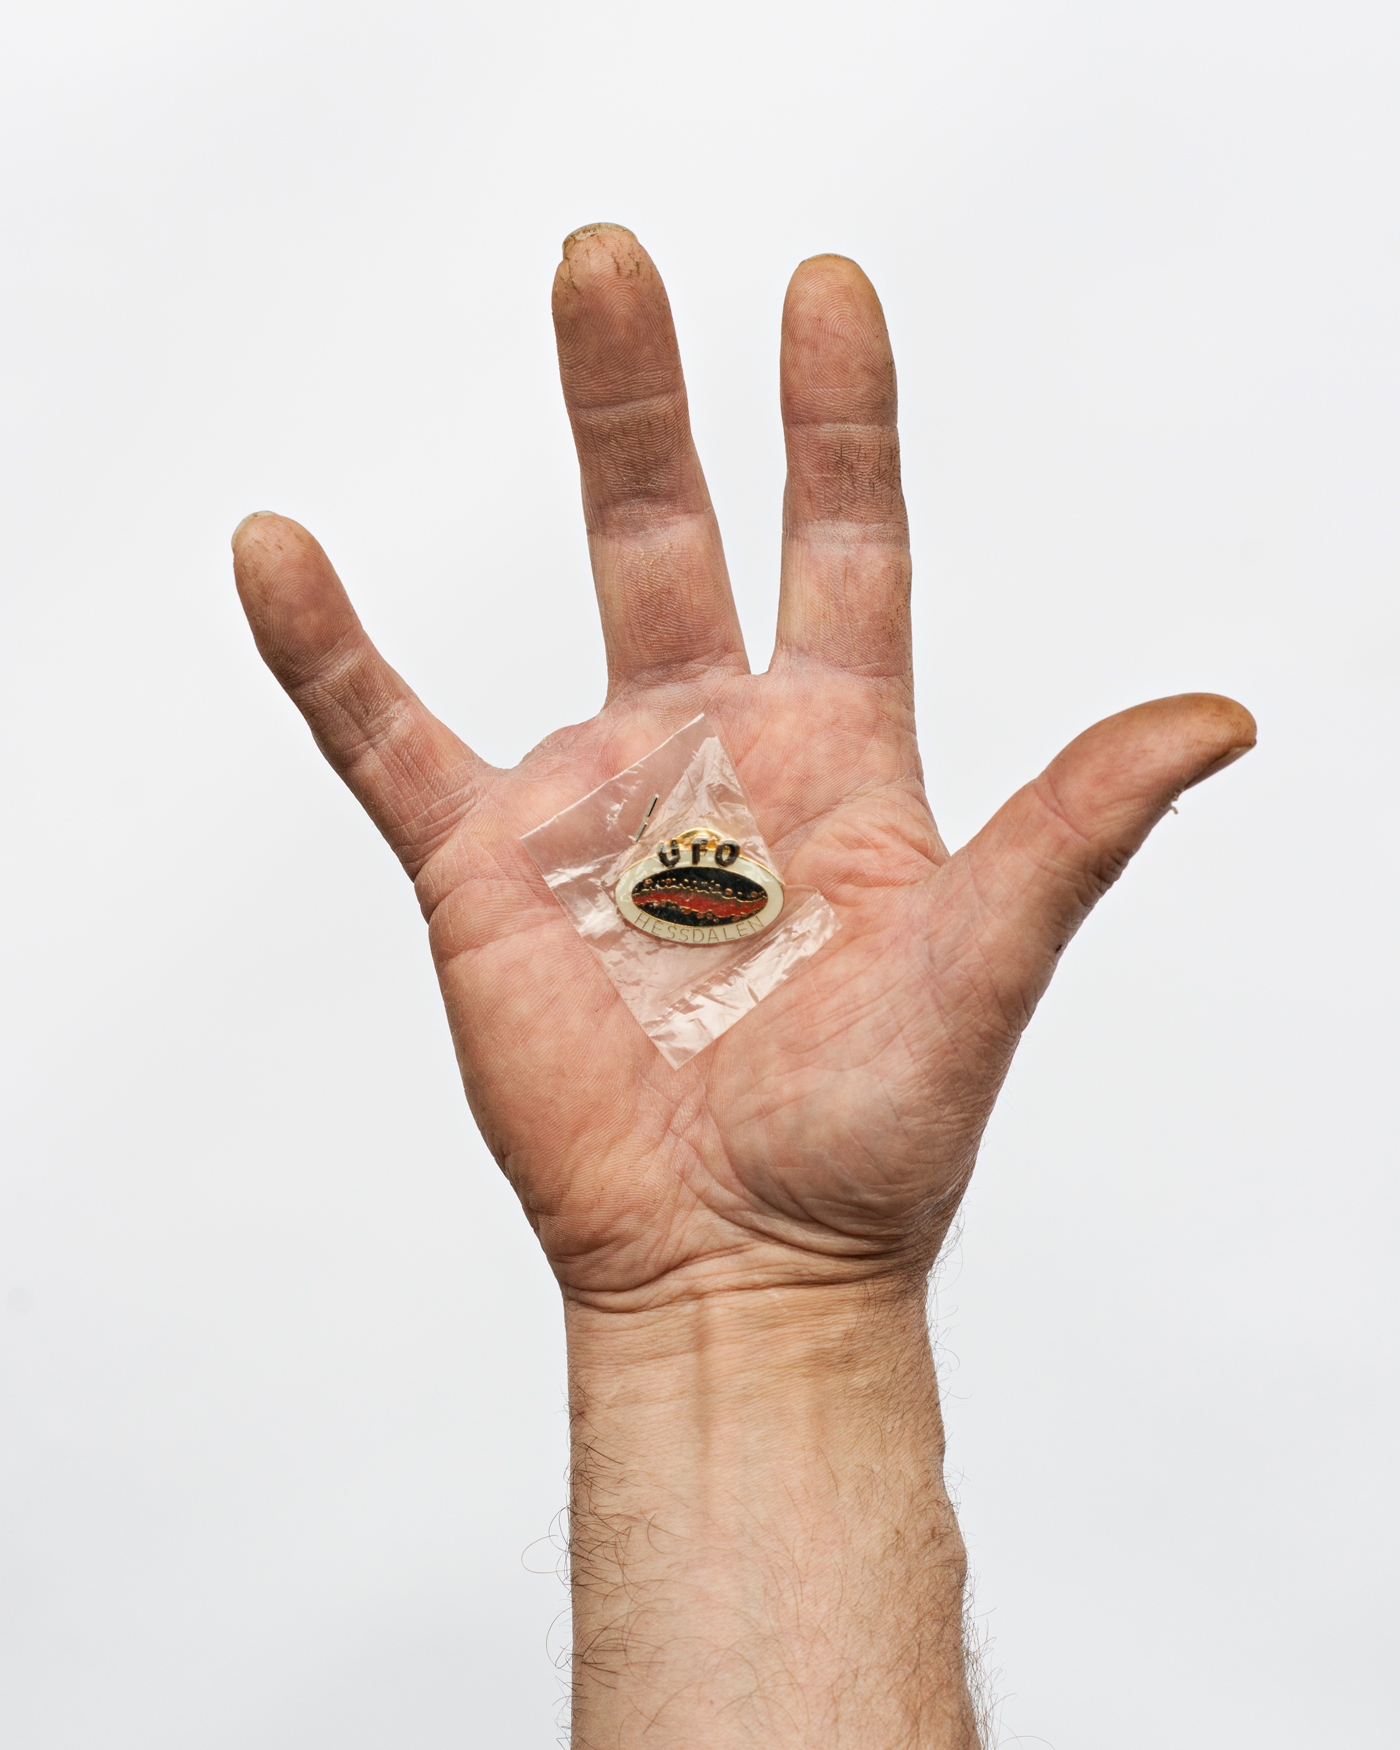 The official Hessdalen UFO pin, in the hand of the salesman. June 2014.